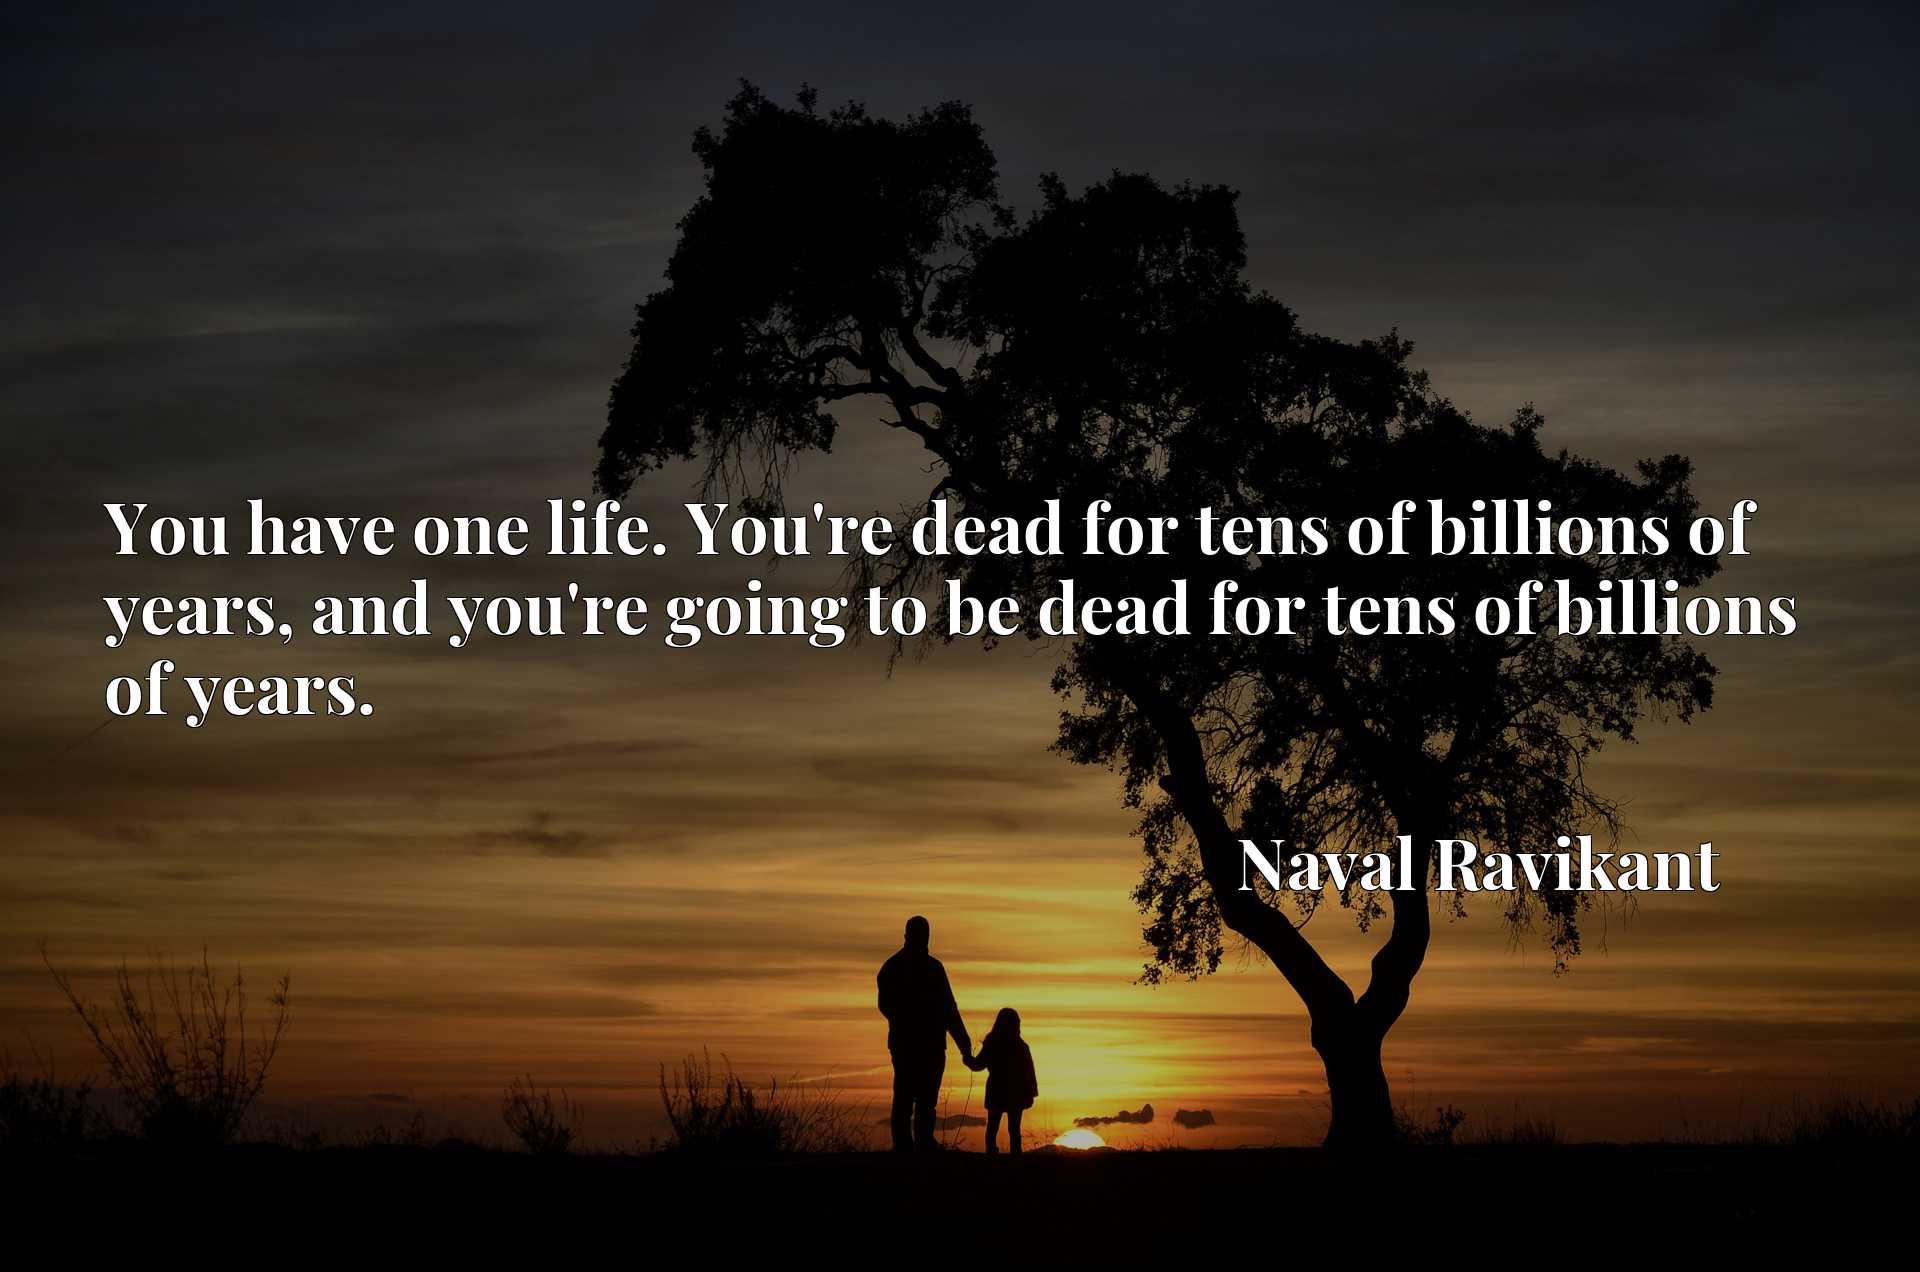 You have one life. You're dead for tens of billions of years, and you're going to be dead for tens of billions of years.